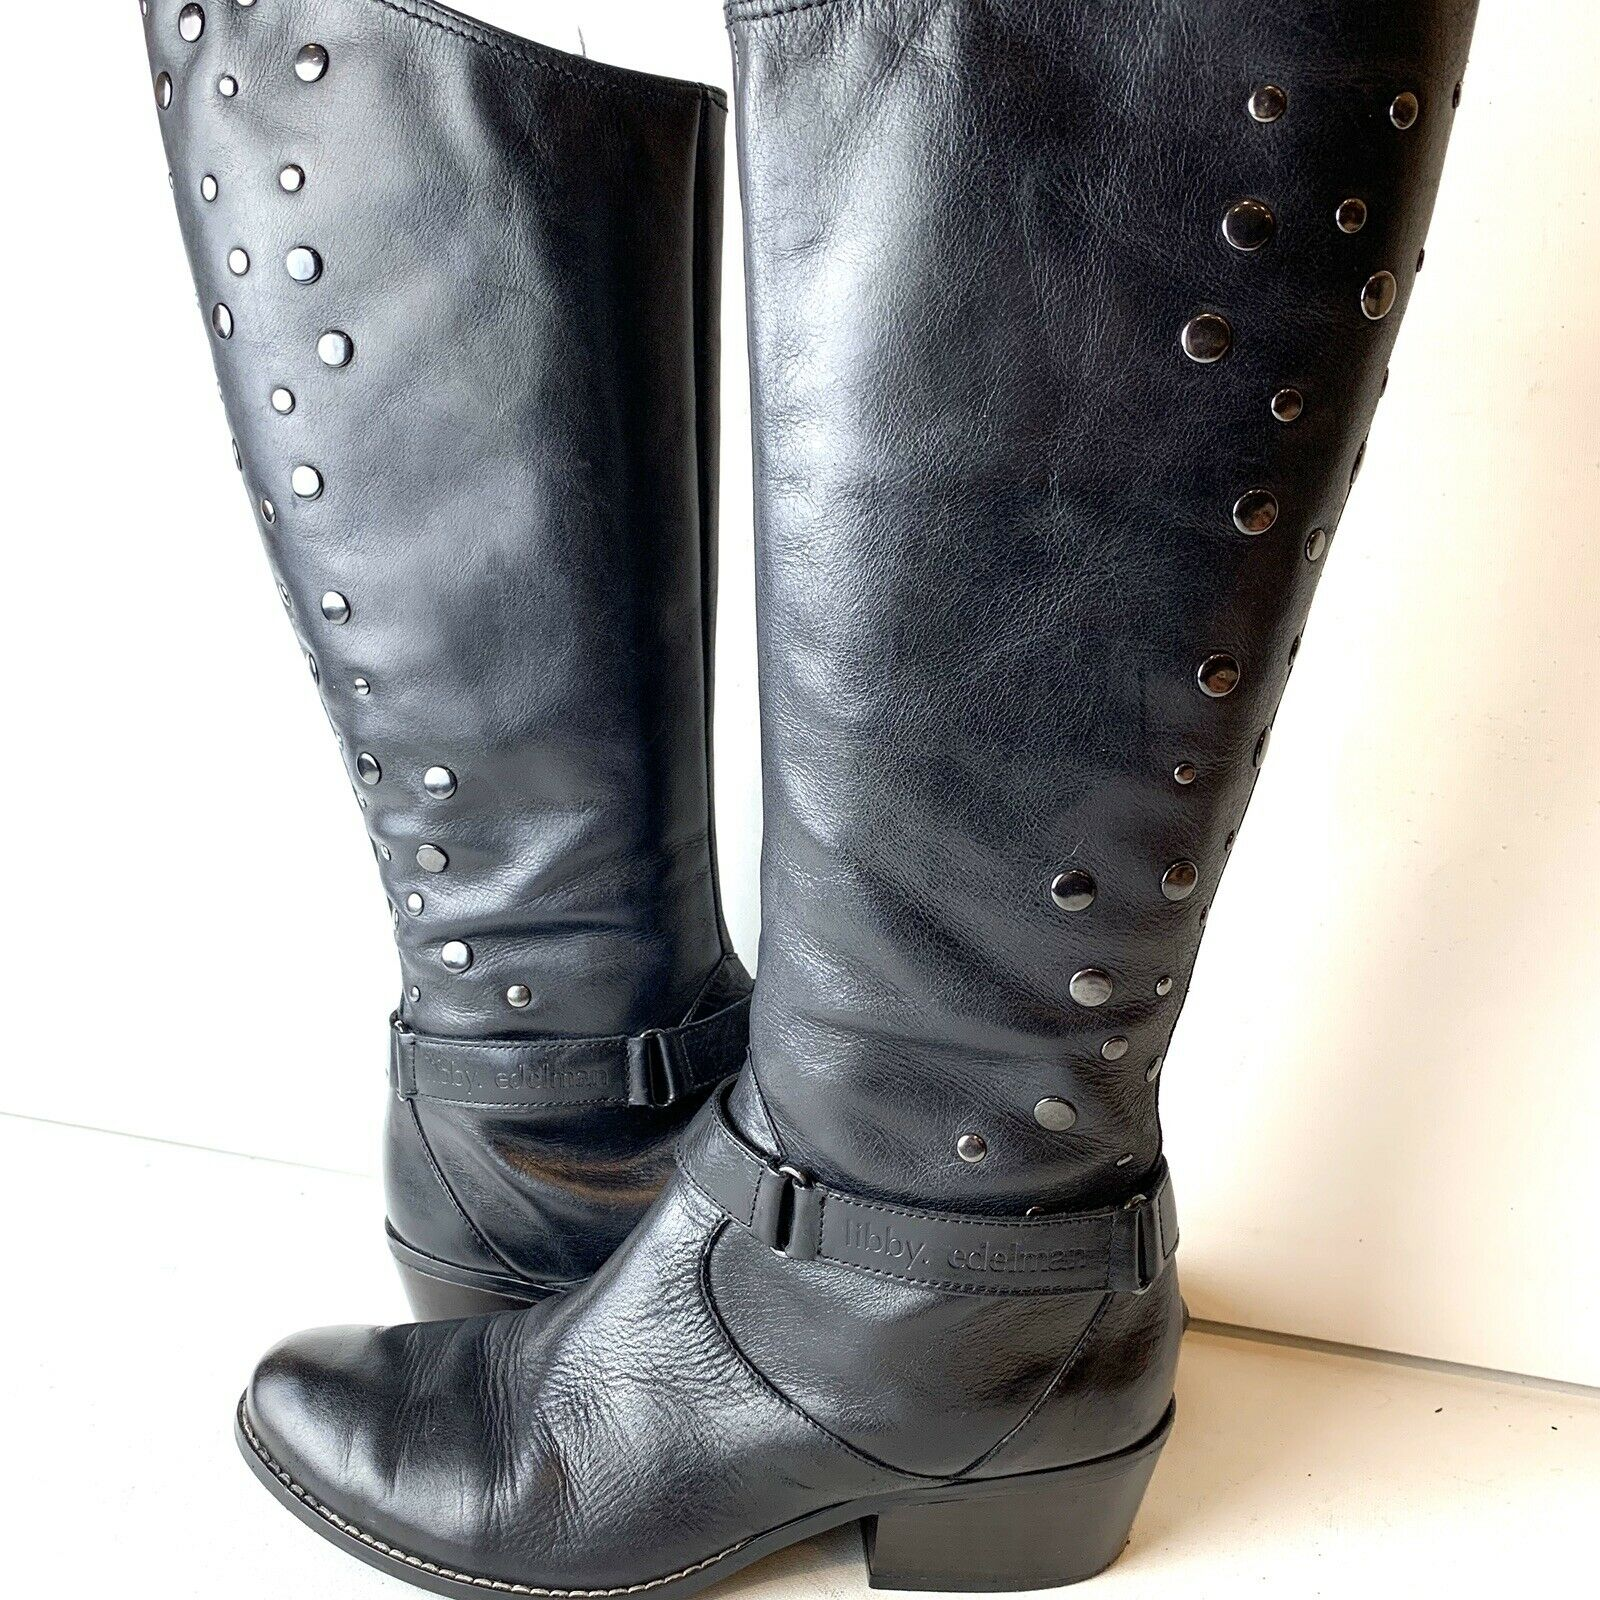 Libby Edelman Black Leather Paramour Boots Womens Size 7.5M Knee High Low Heel